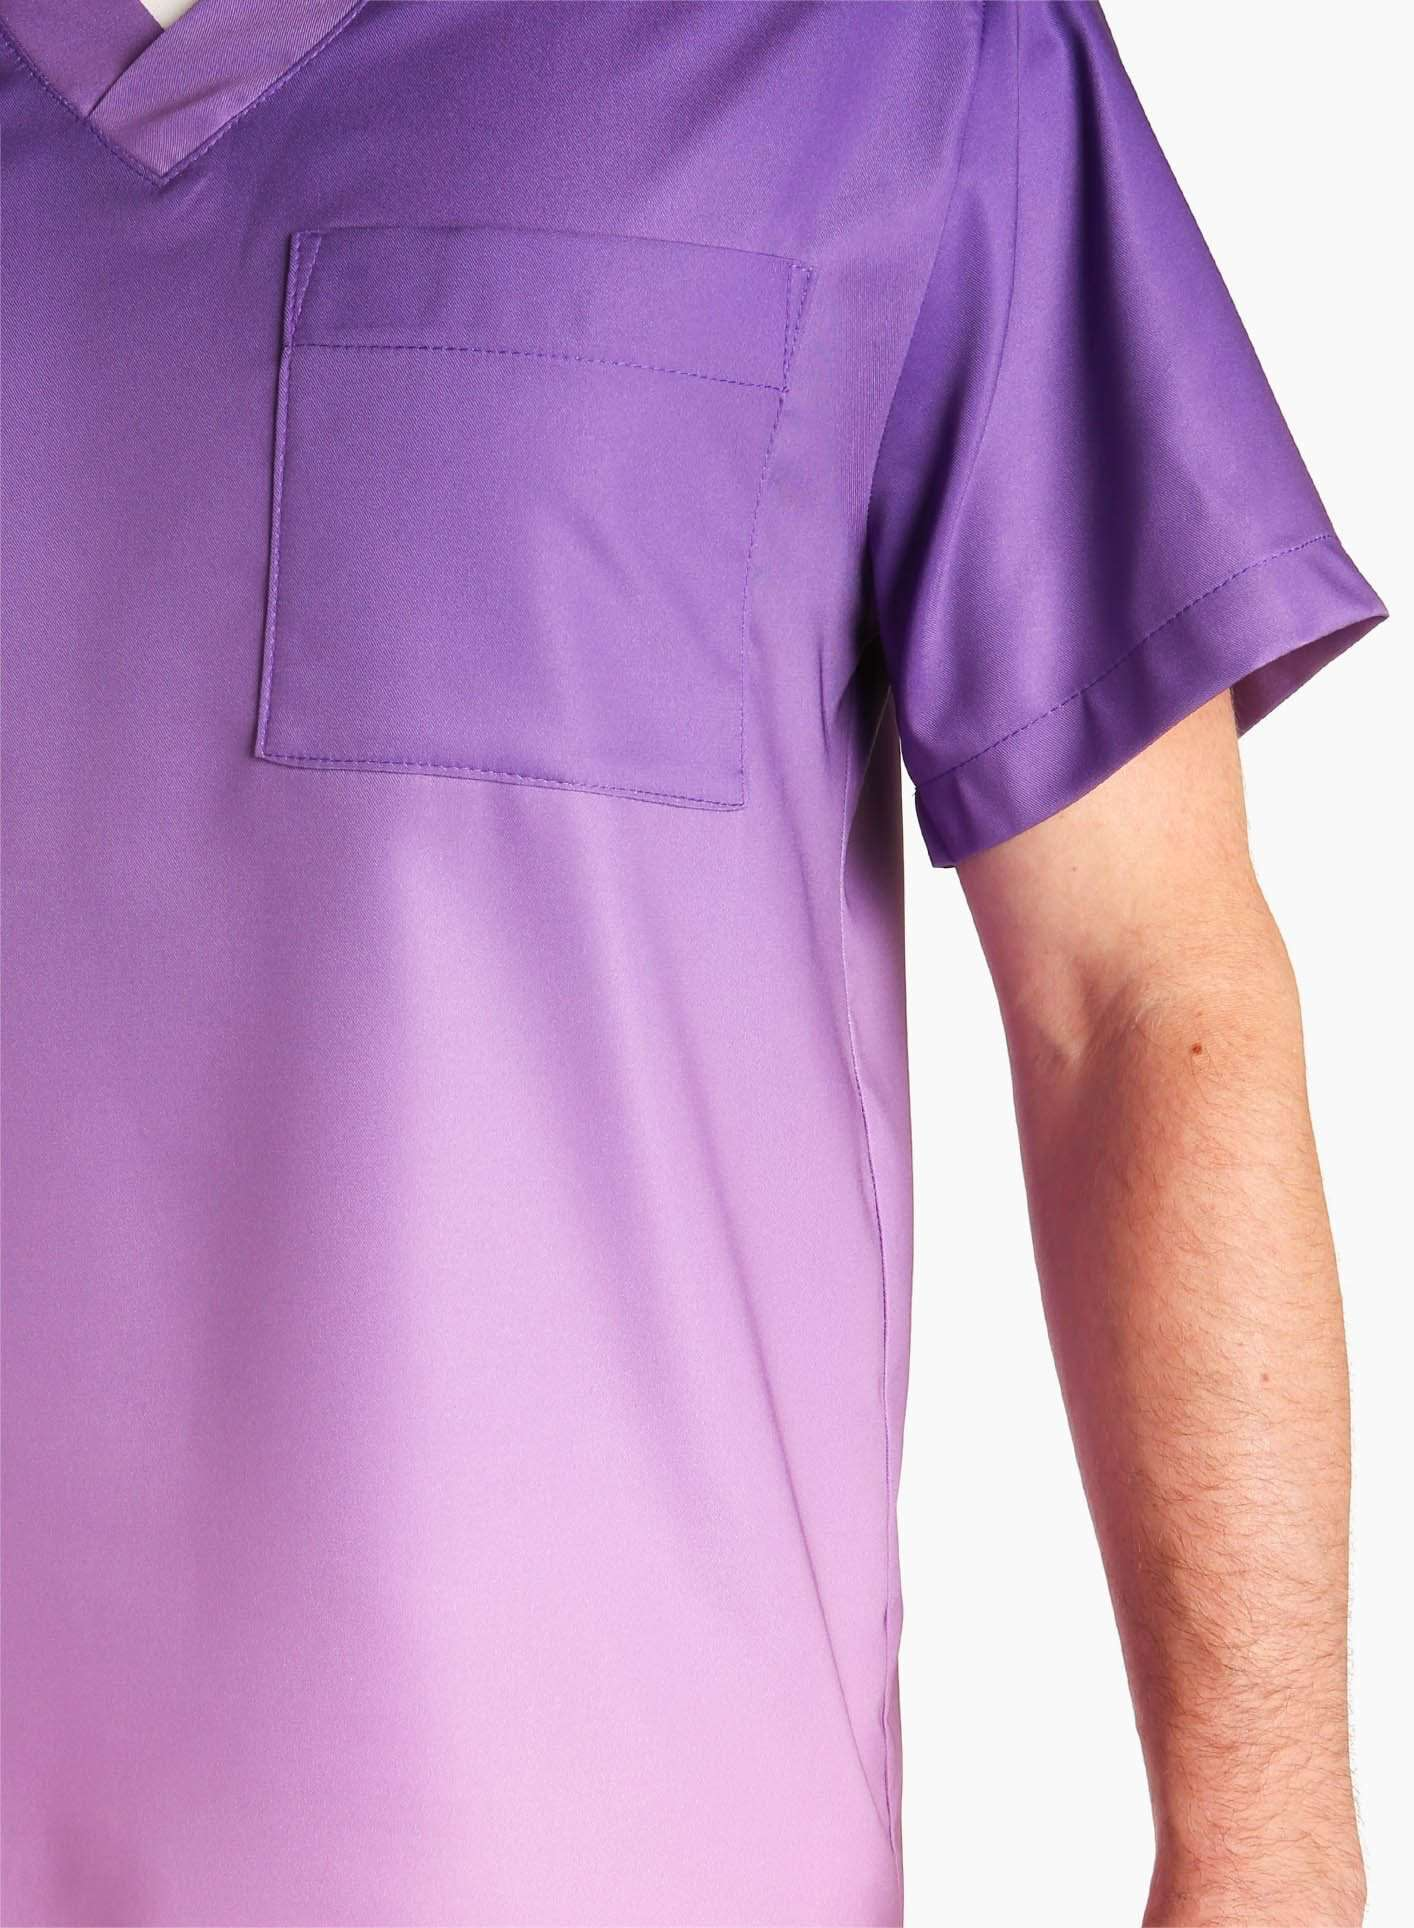 mens stretch scrub top in two tone purple ombre detail